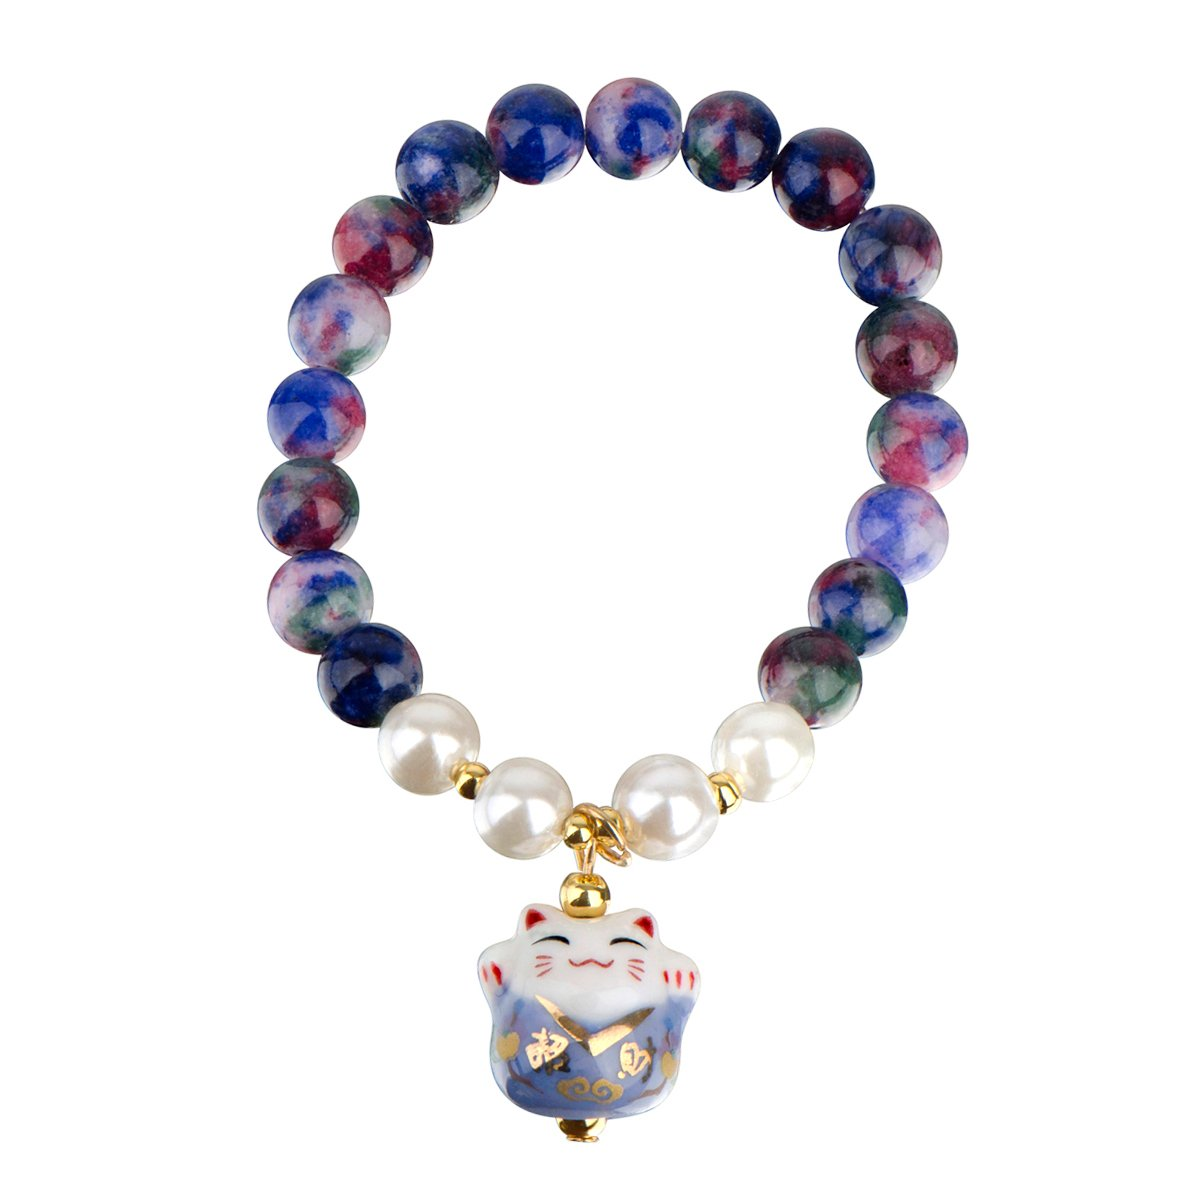 Lucky Cat Ceramic Beaded Friendship Bracelet – Blue & Multicolored